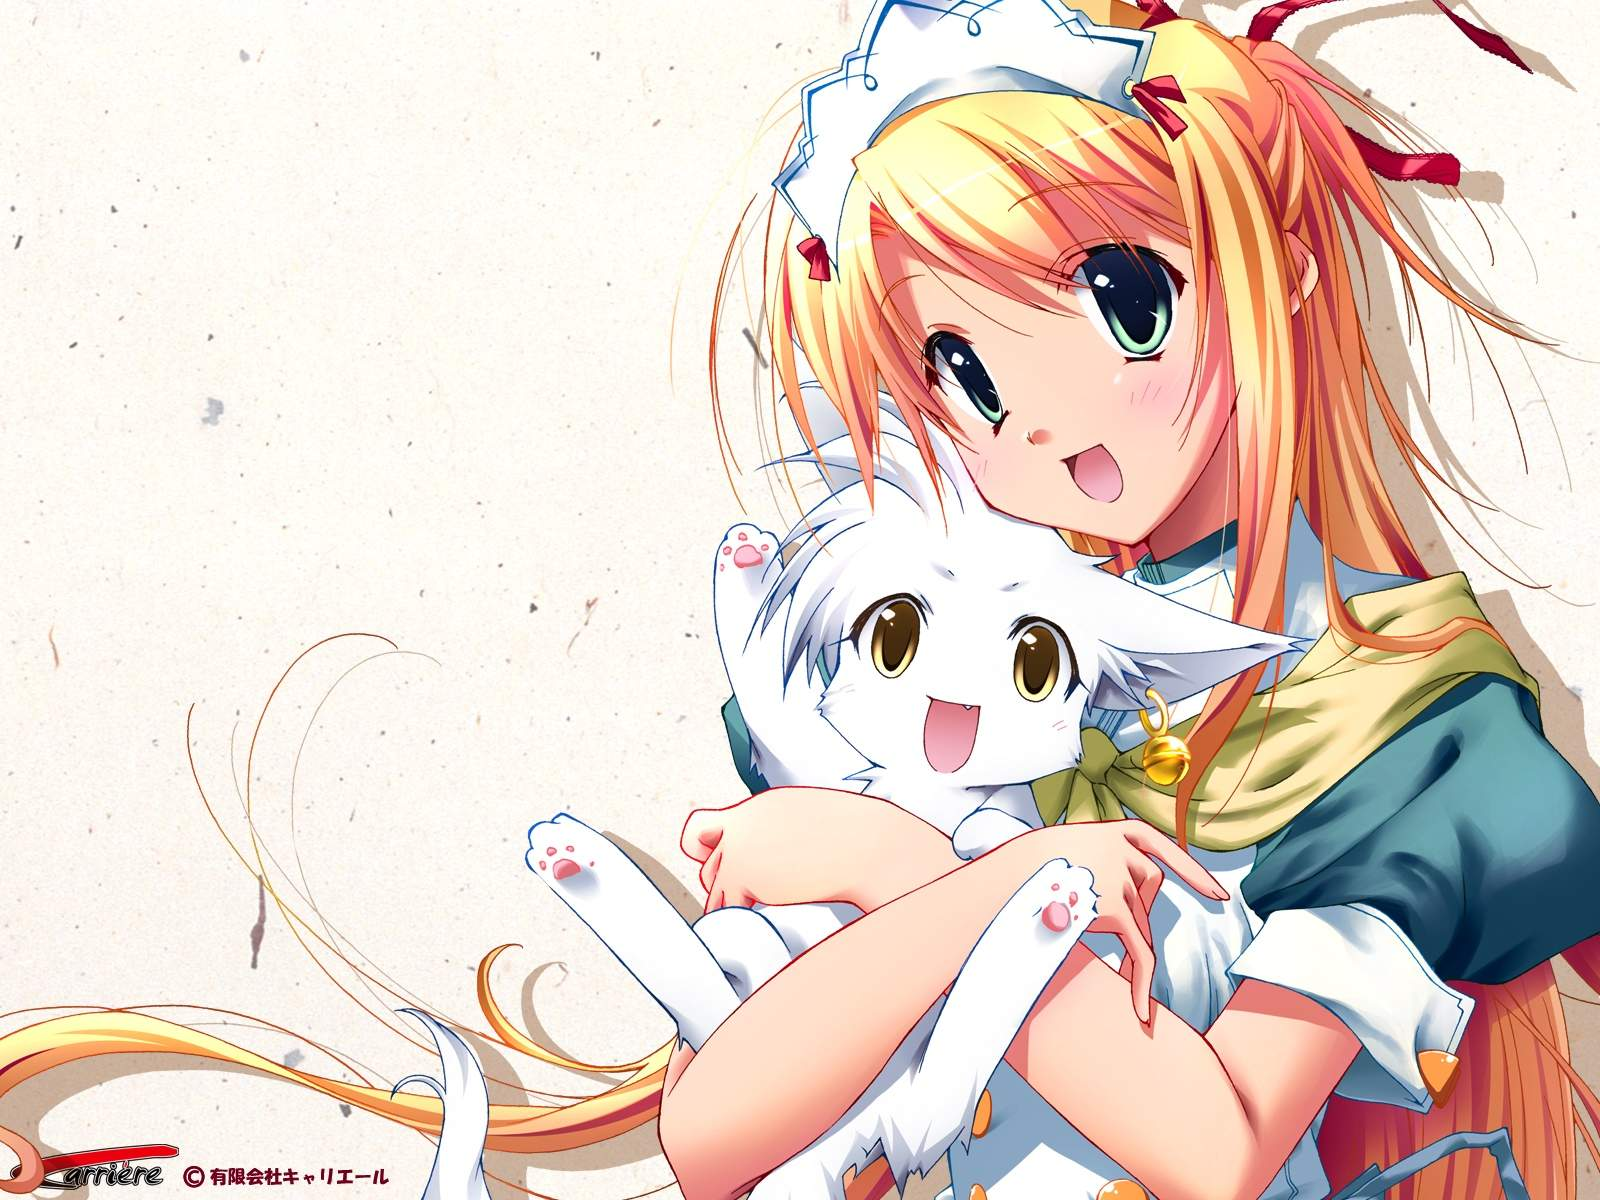 Manga Wallpaper Cute